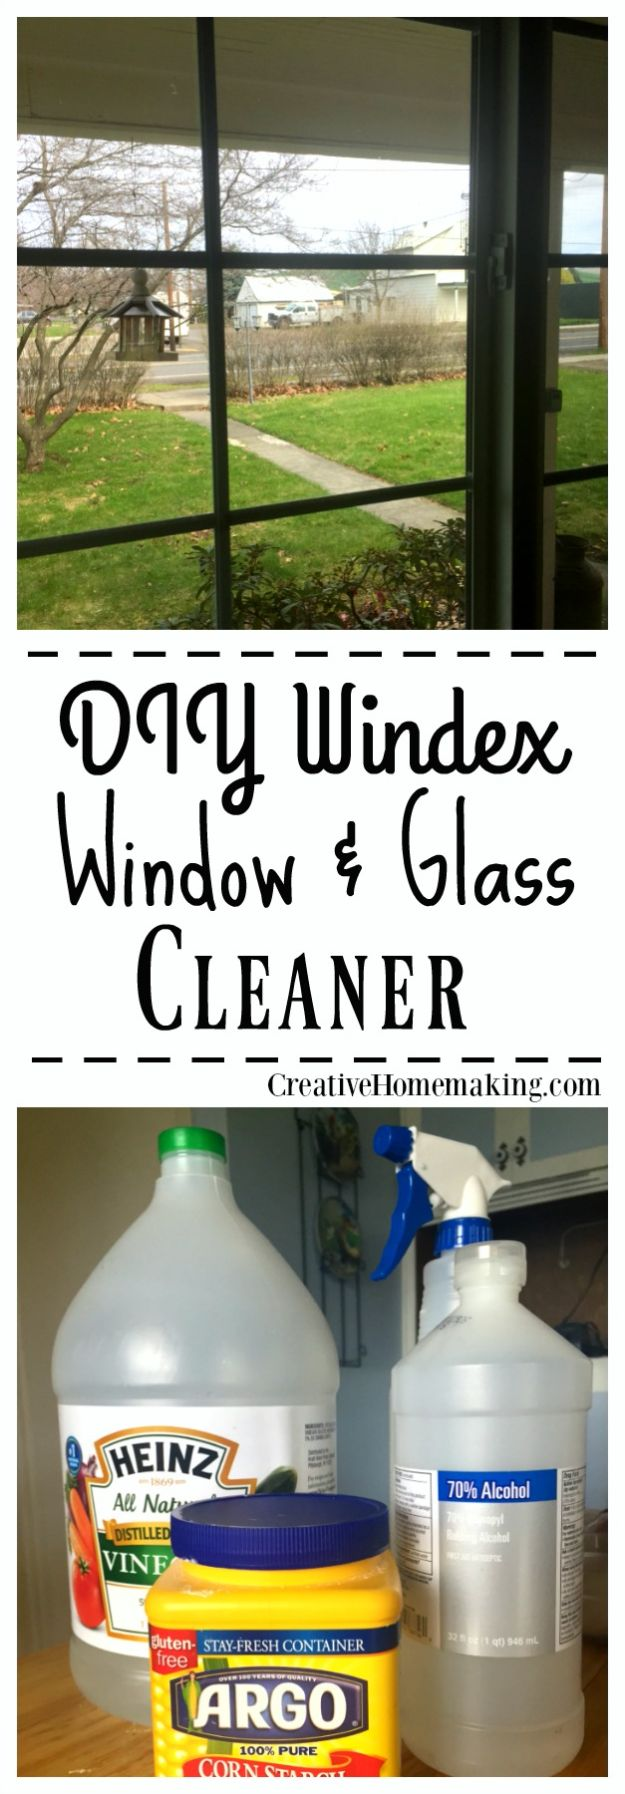 Homemade Cleaning Products - DIY Windex Homemade Glass and Window Cleaner - DIY Cleaners With Recipe and Tutorial - Make DIY Natural and ll Purpose Cleaner Recipes for Home With Vinegar, Essential Oils